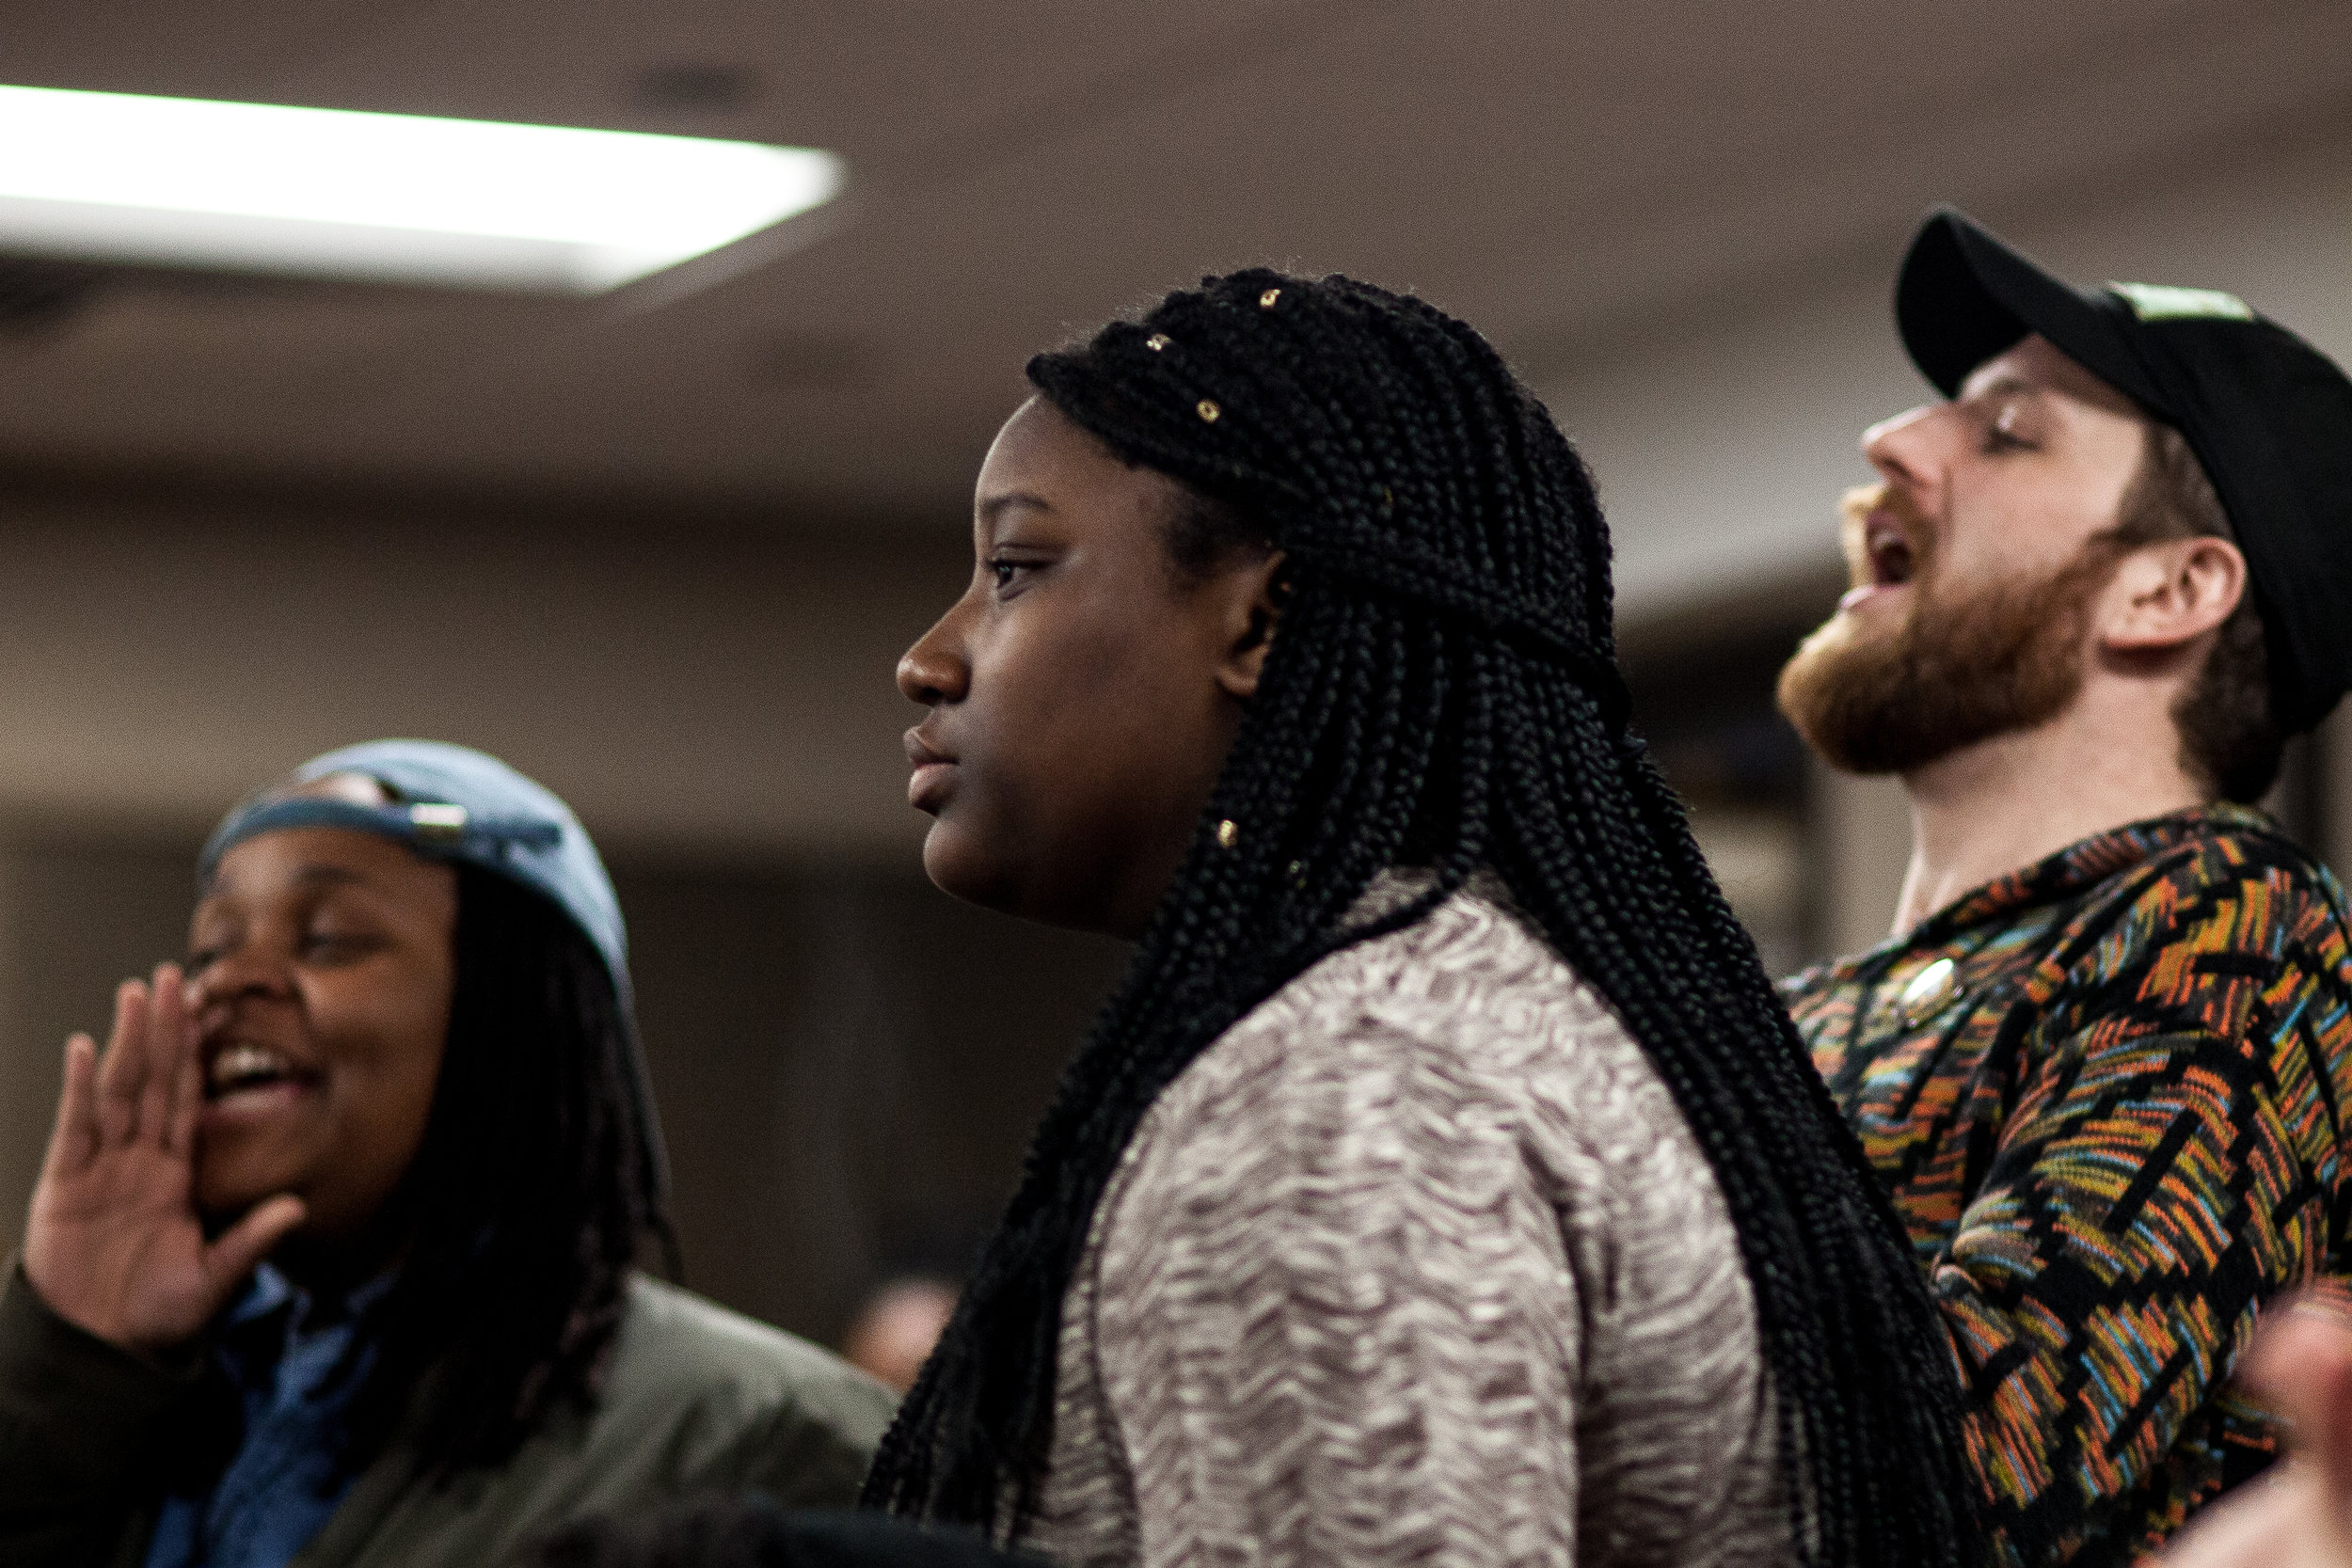 Pierresaint's coaches cheer her on as she walks up to the mic for her final bout in the preliminaries of Louder Than A Bomb. Pierresaint qualified to compete in the individual finals April 29 in Boston.